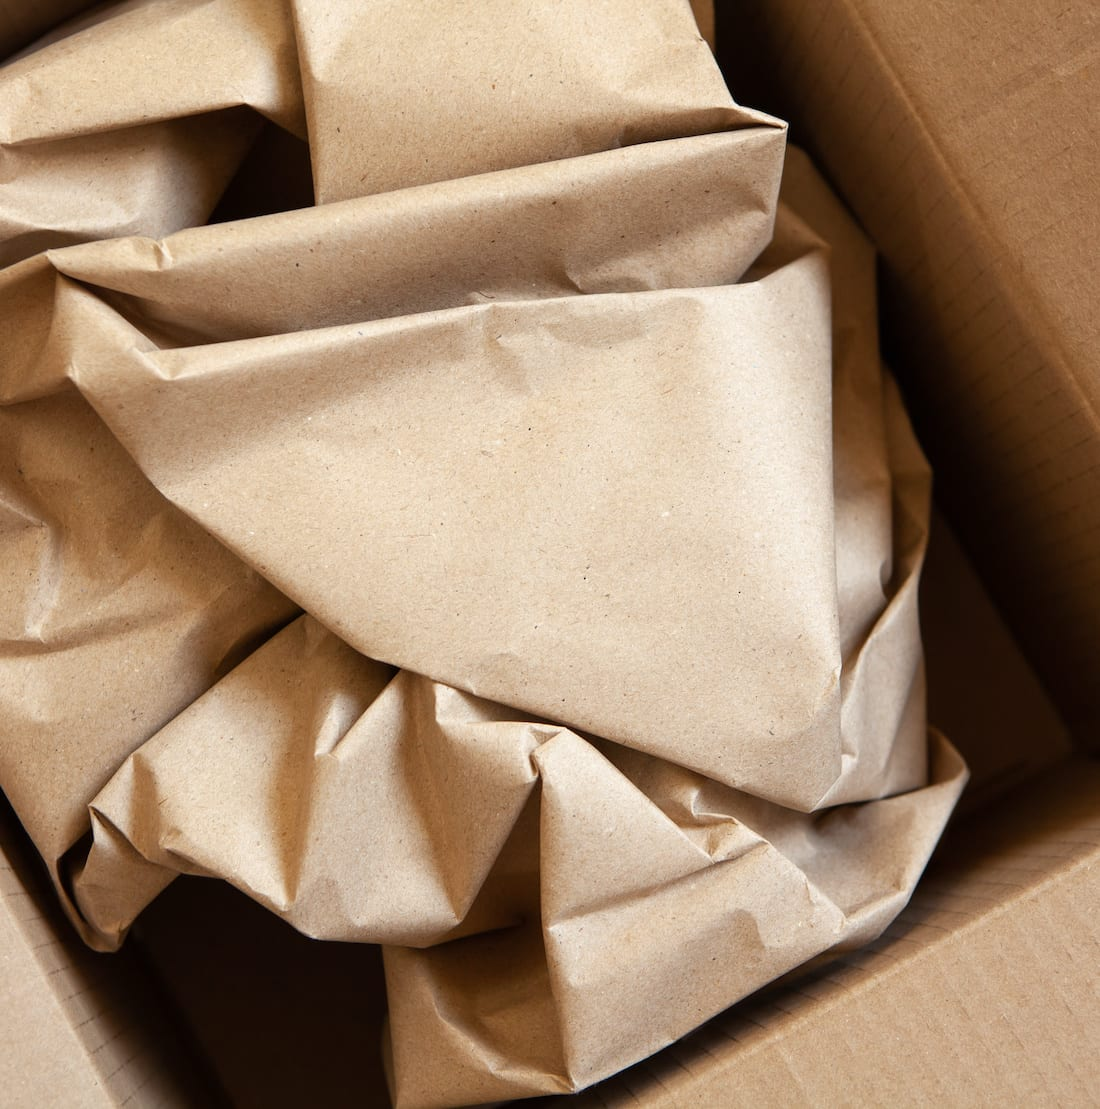 Crumpled wrapping craft brown paper in open after delivery paperboard box. Horizontal. Delivery, ecology, plastic free, resource overrun concept. Flat lay, top view, close-up.